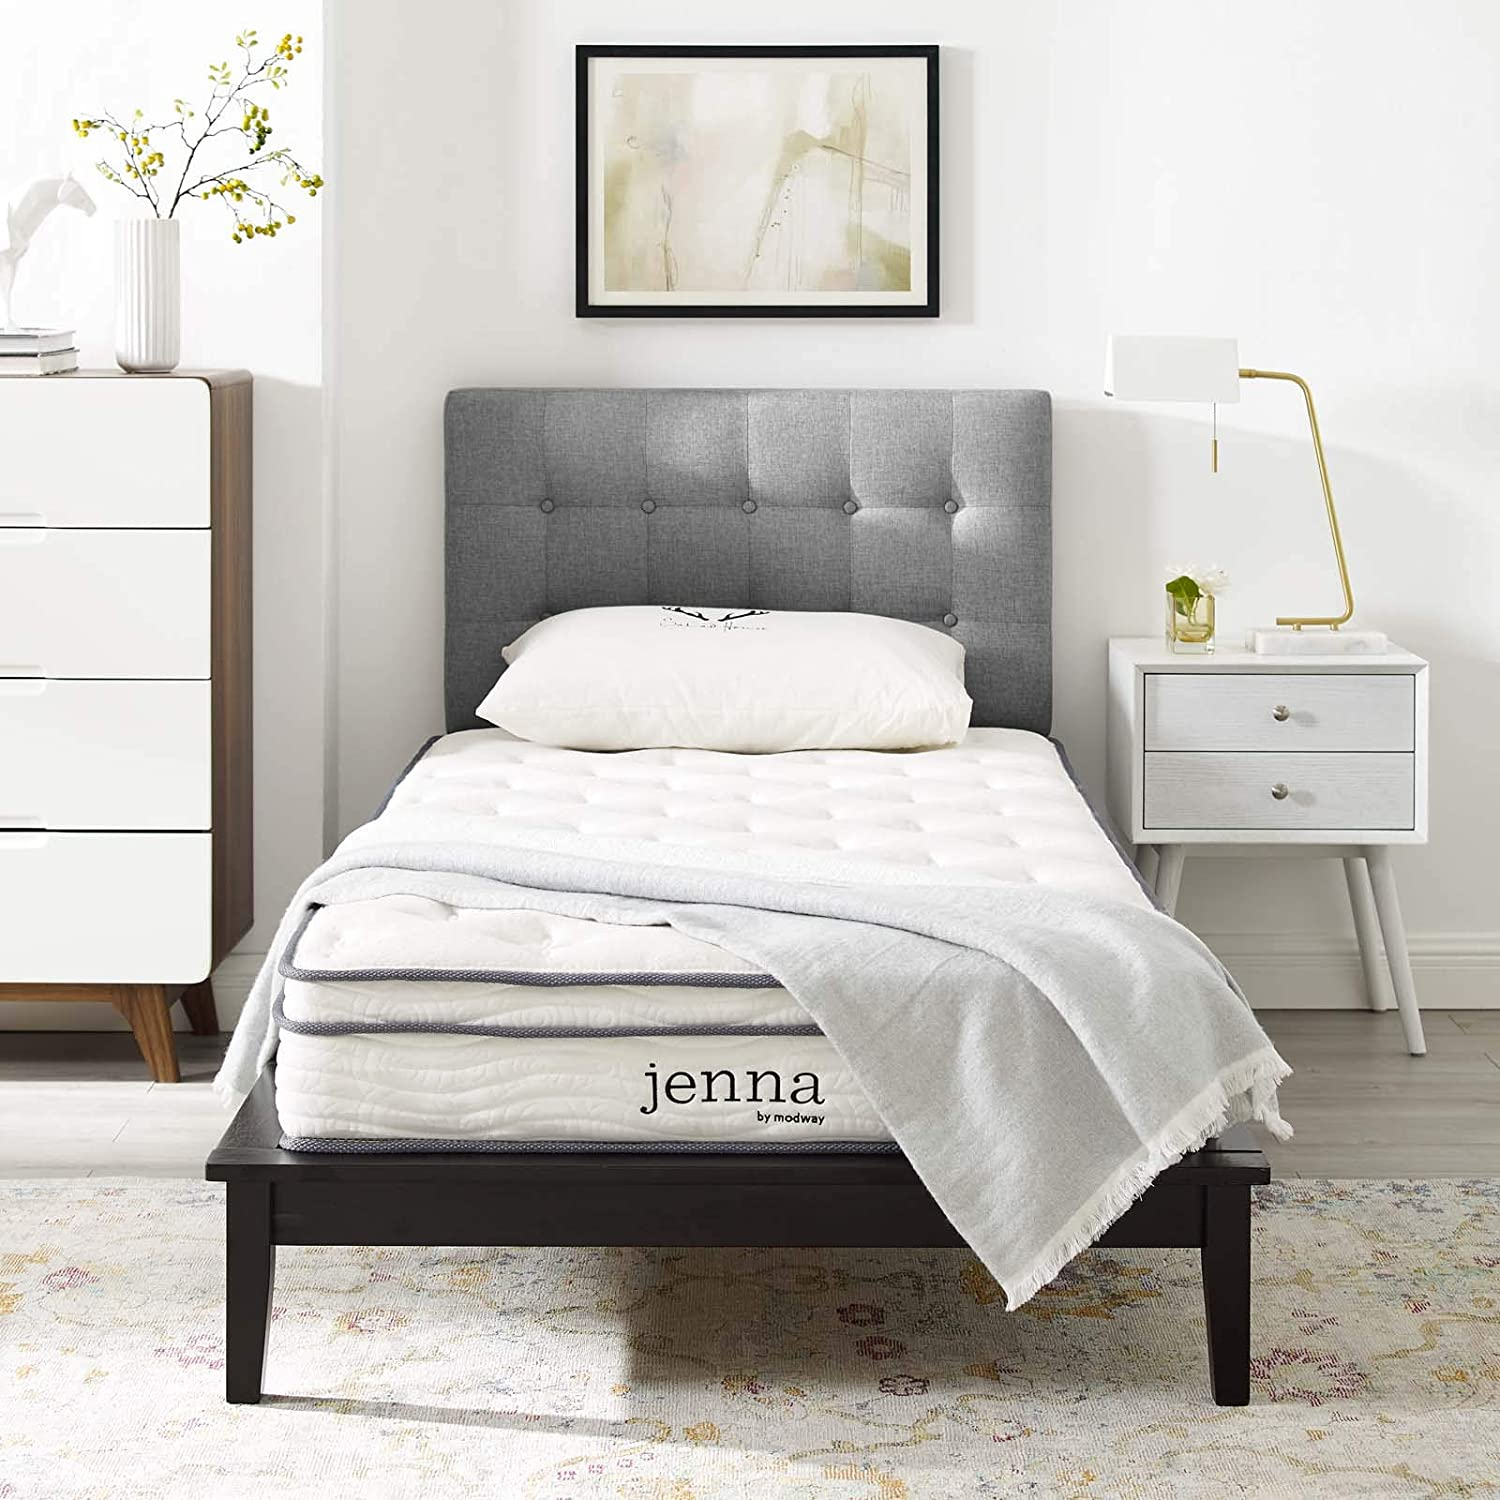 """Modway Jenna 8"""" Narrow Twin Innerspring Mattress - Top Quality Quilted Pillow Top - Individually Encased Pocket Coils - 10-Year Warranty"""